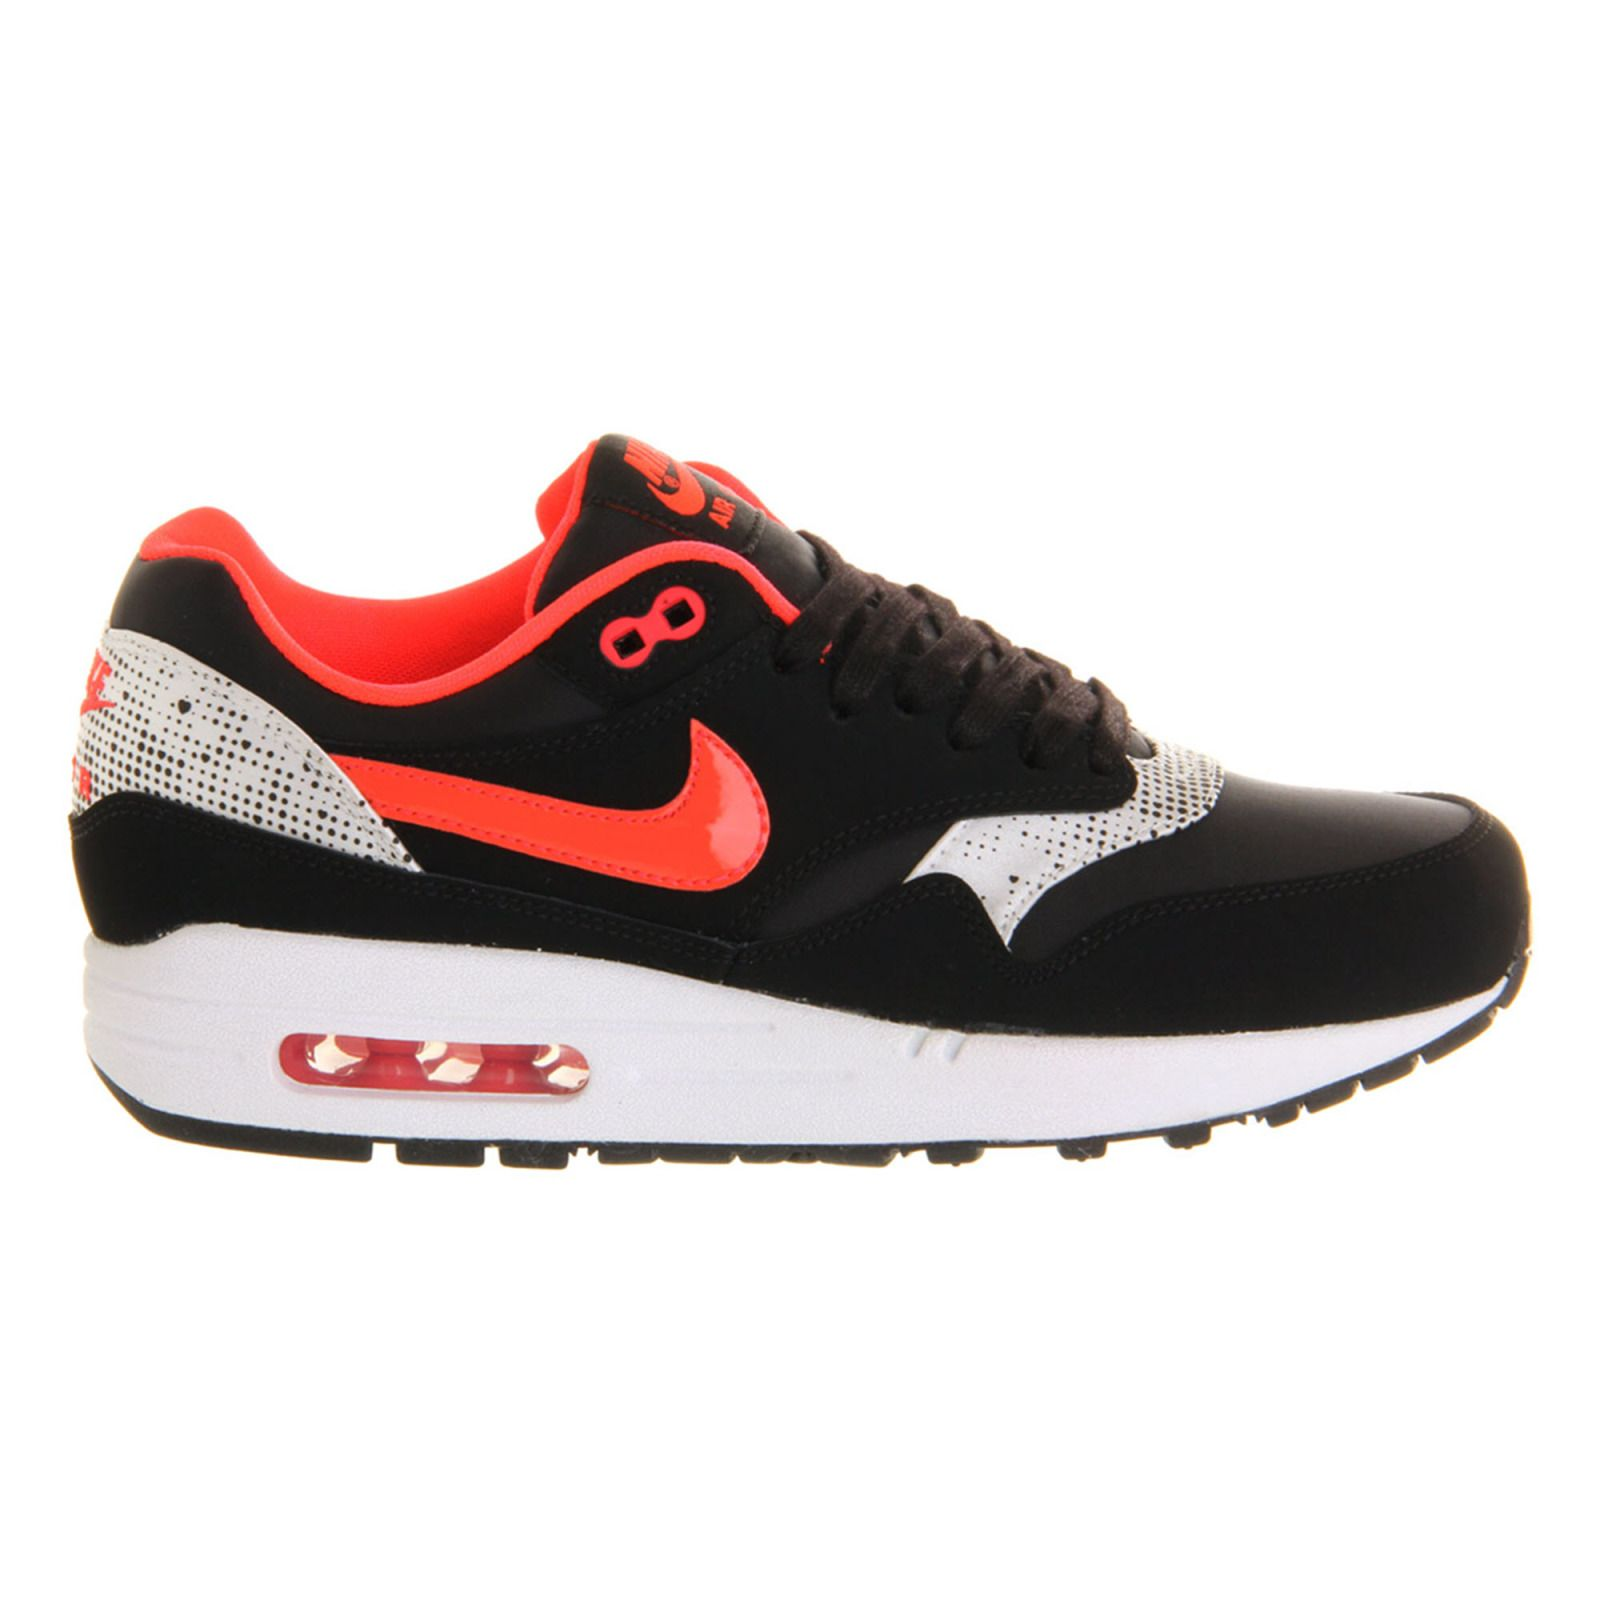 take and for to style comfort trainers you best through The wlPuOiTkXZ